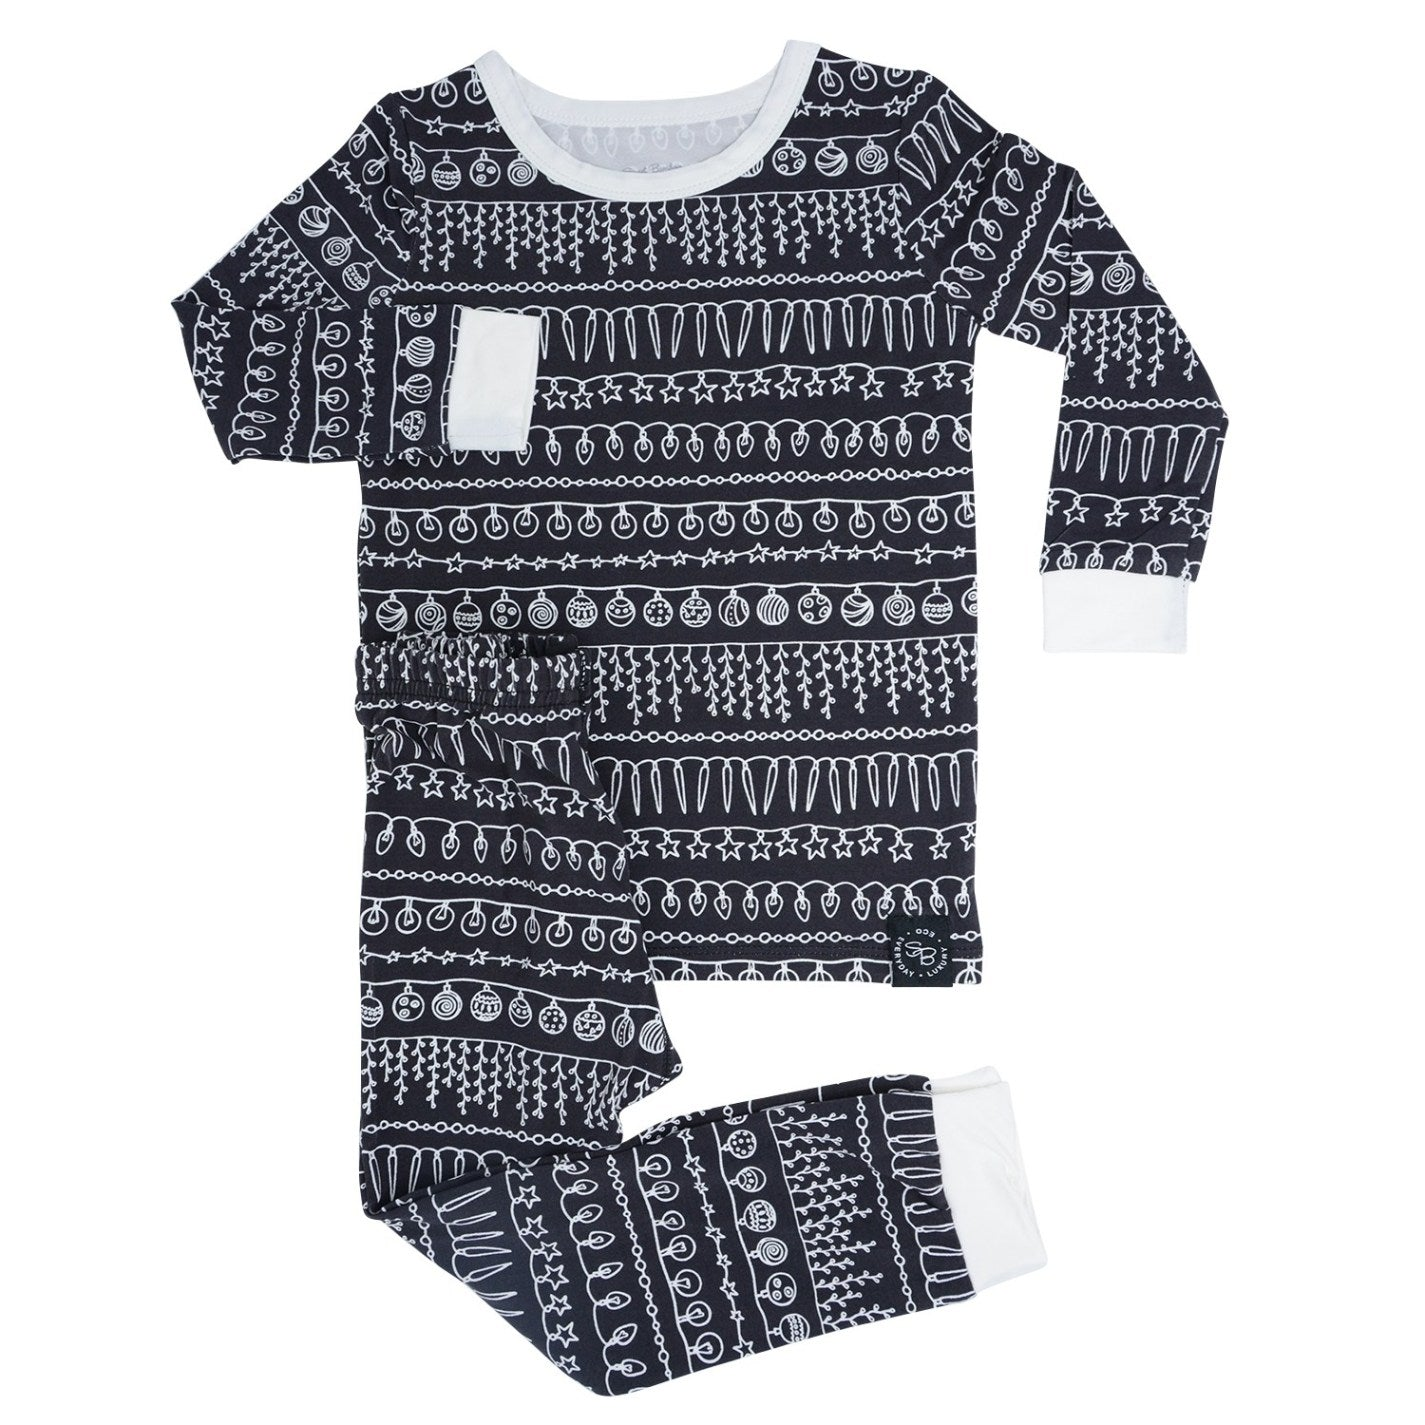 Sweet Bamboo Big Kid Pj's Set - Festive Lights